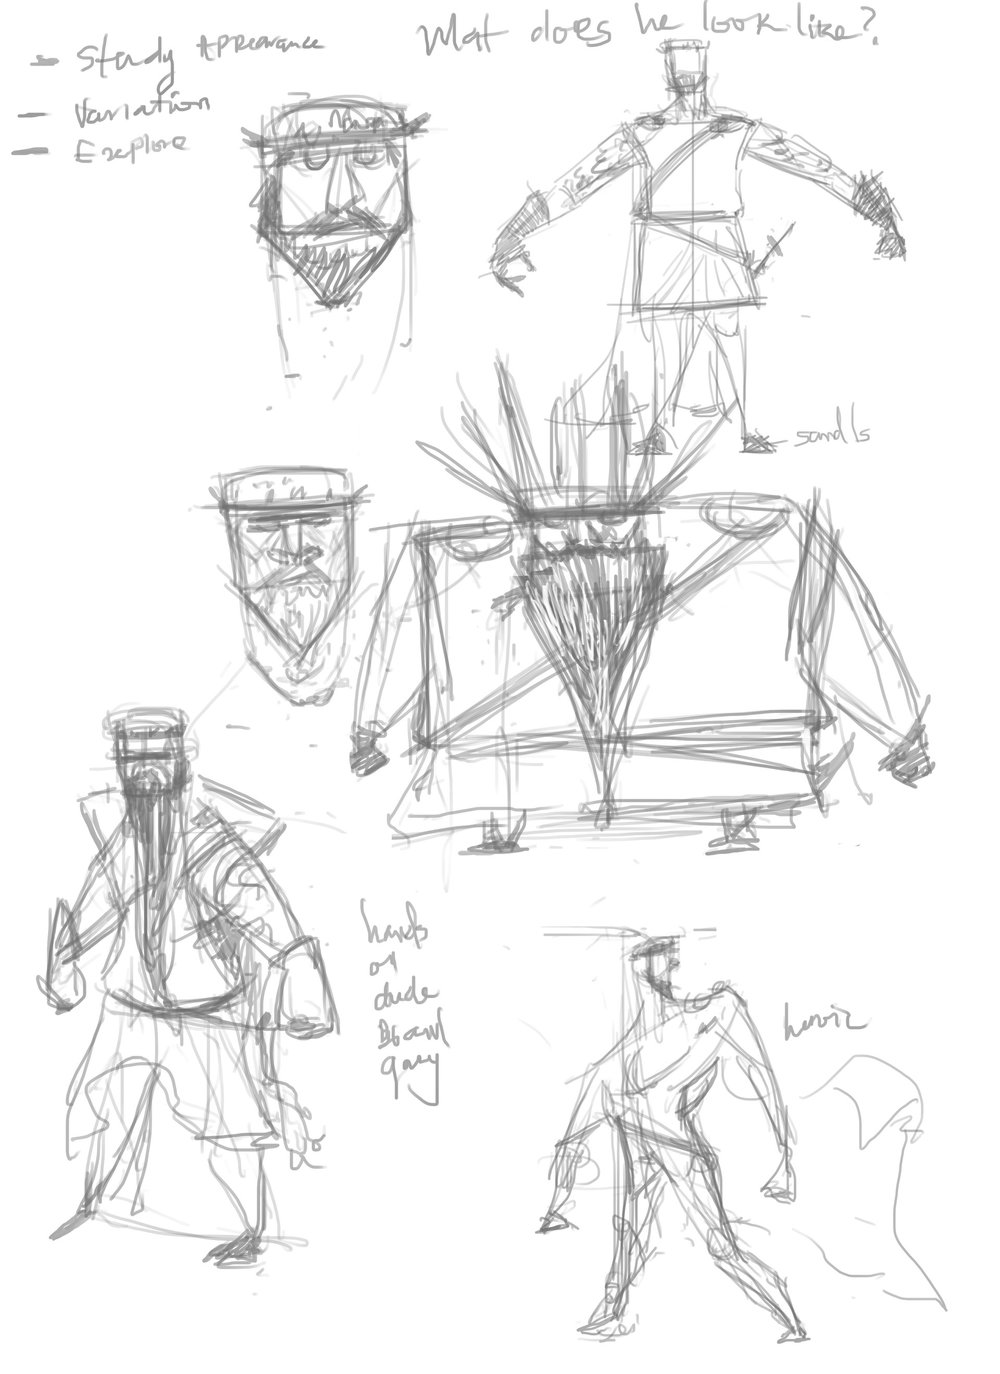 02_RobertBruce_DESIGN EXPLORATION.jpg